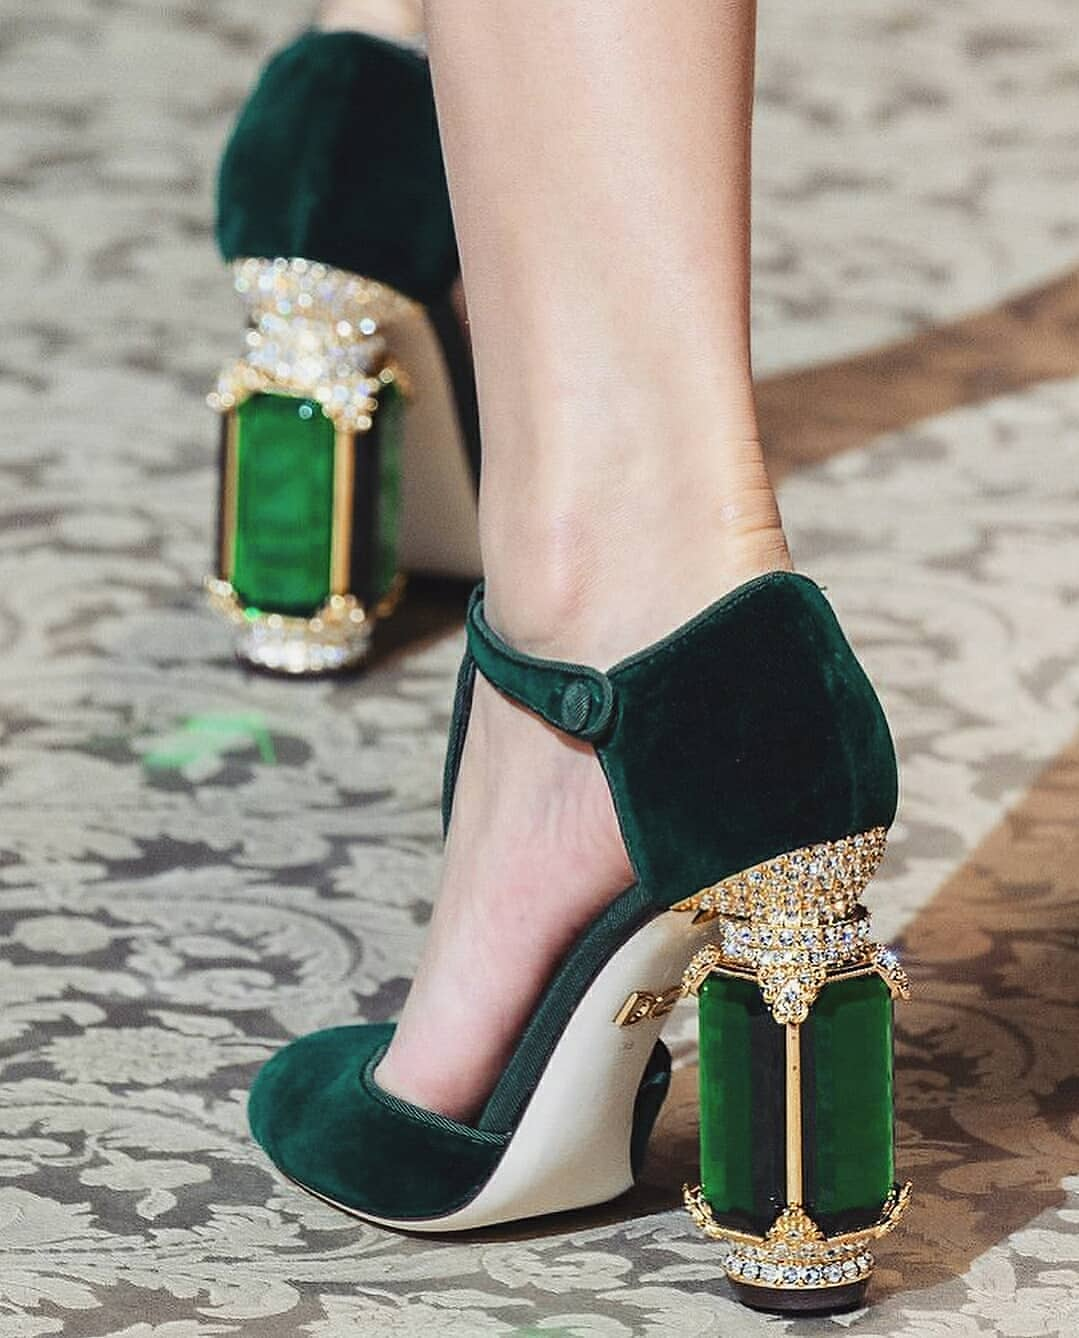 The Best Bling Online. Baroque Green Velvet and Emerald Crystal High Heel Sandals with Gold Rhinestones.